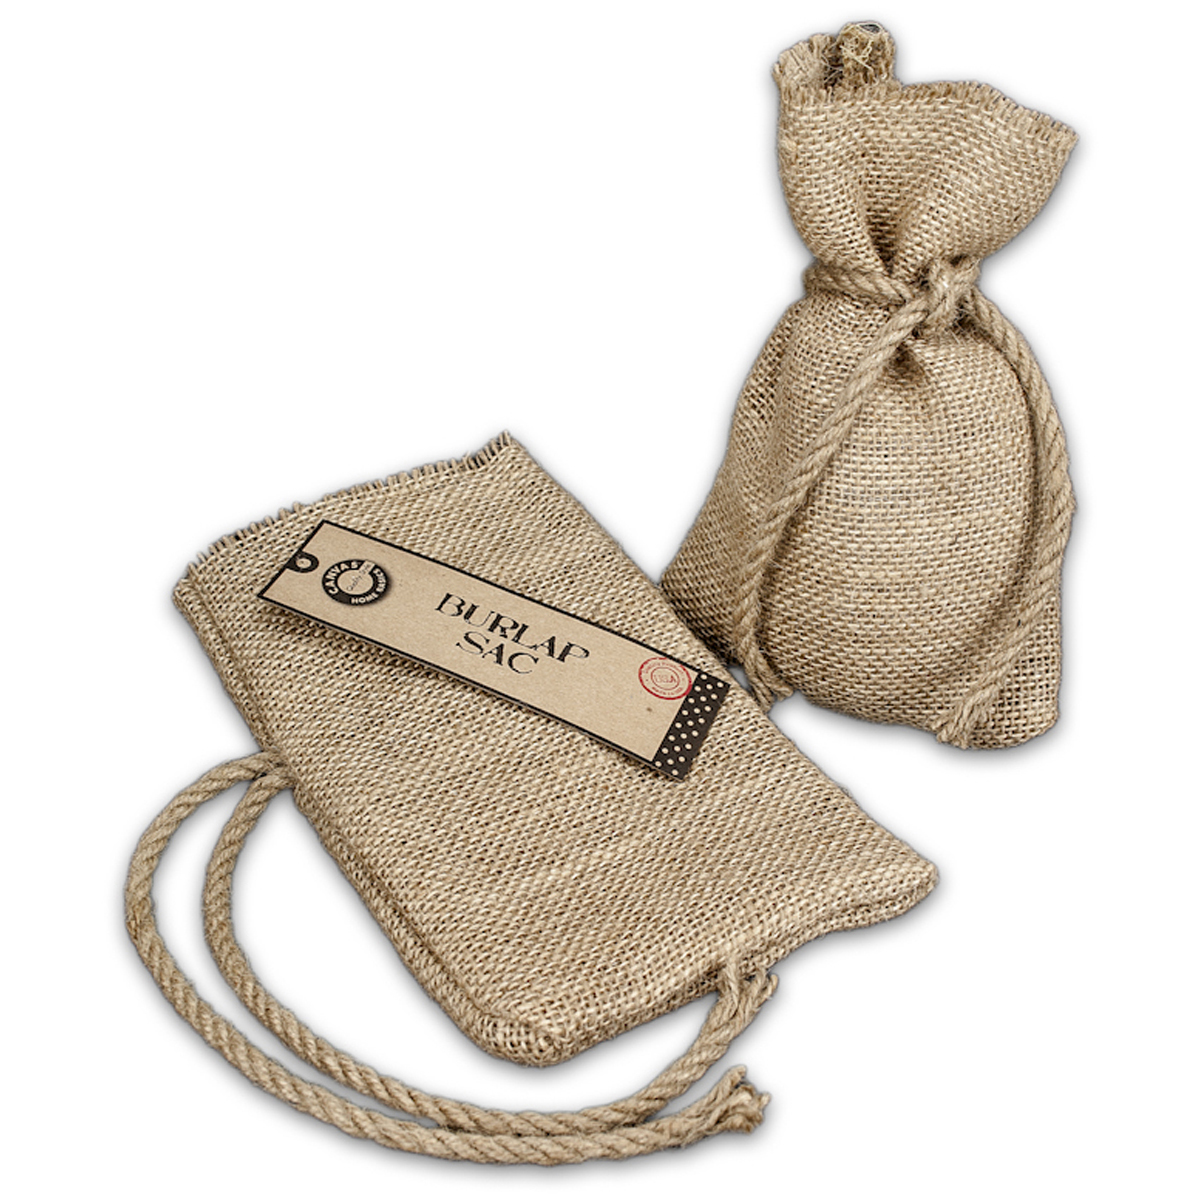 Canvas Corp 5.25-Inch by 8-Inch Burlap Sack, Small, Natural Multi-Colored